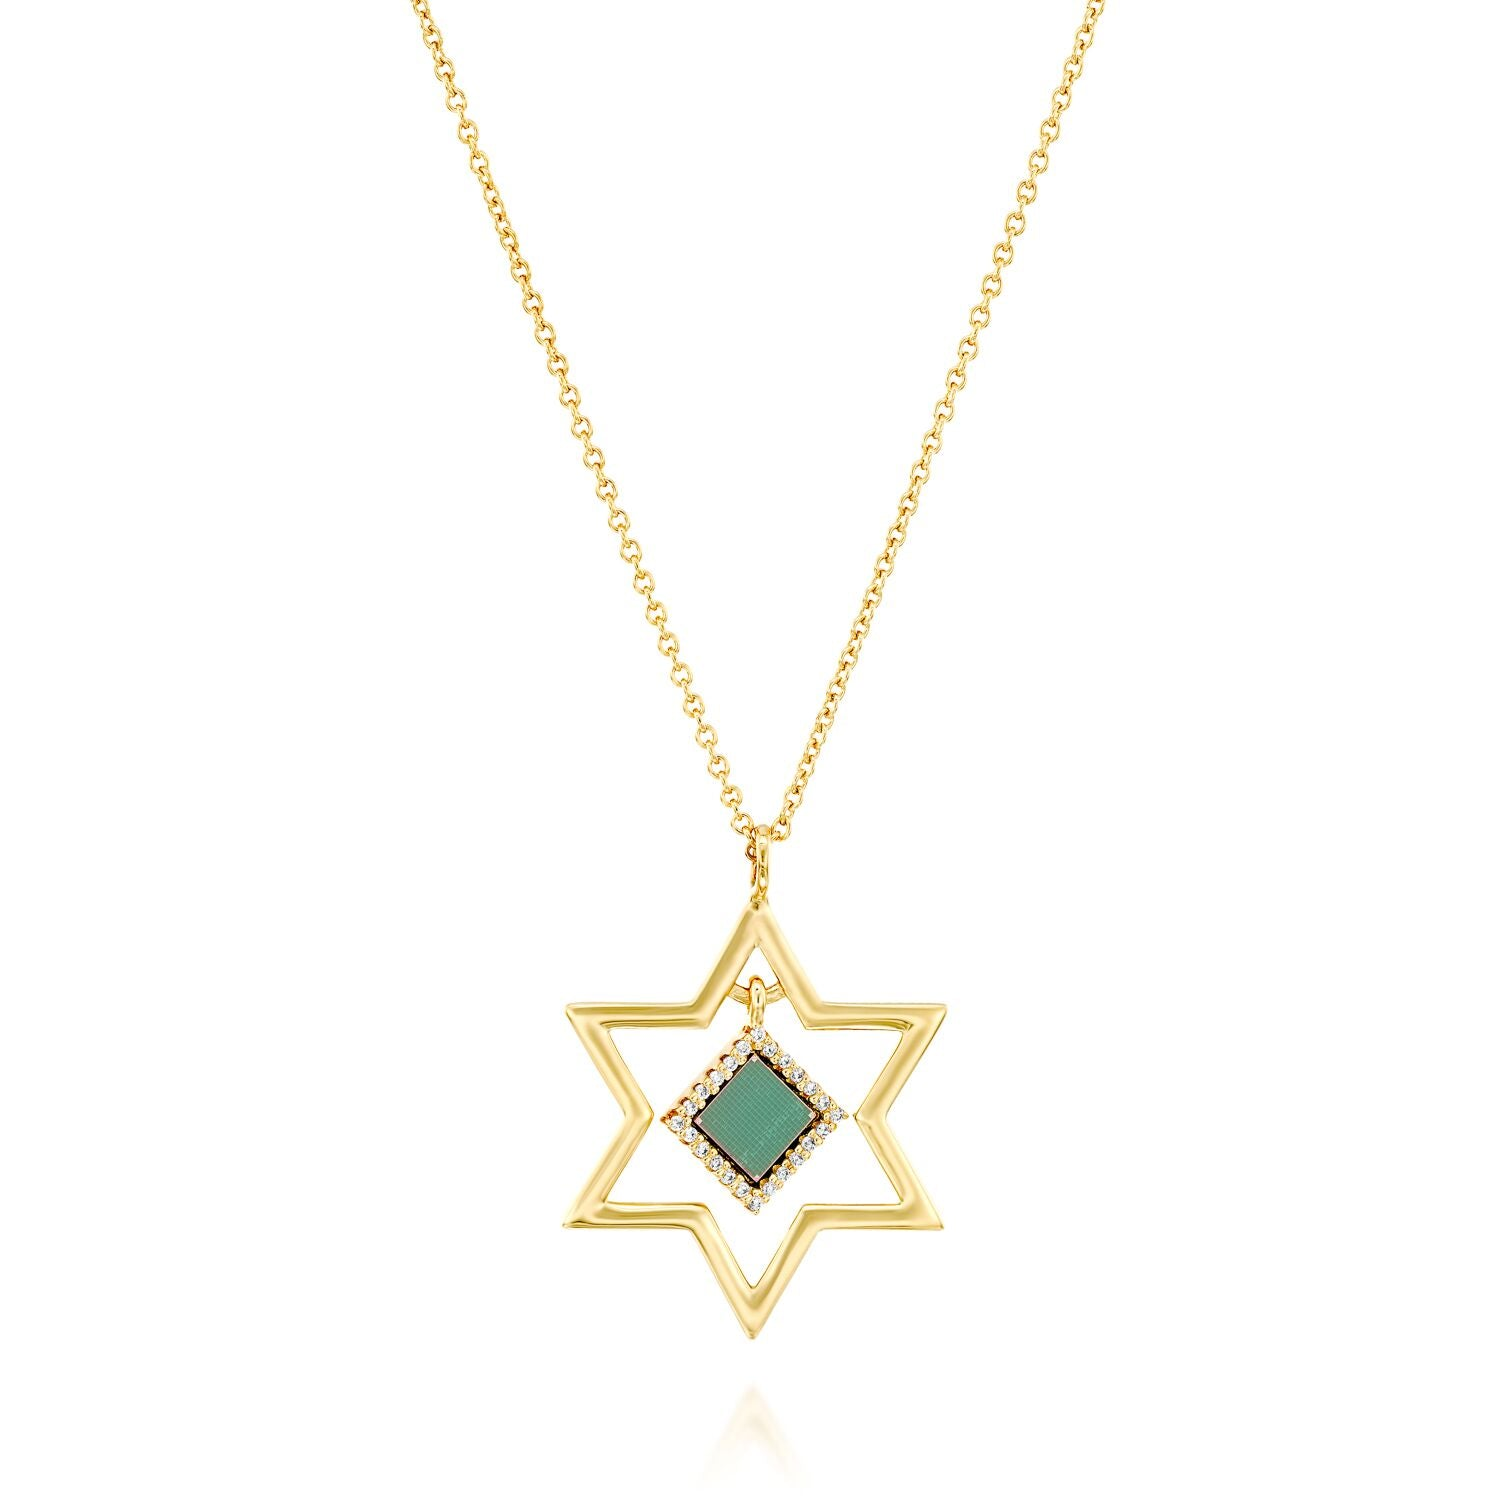 Star of David Necklace - Gold & Diamonds collection